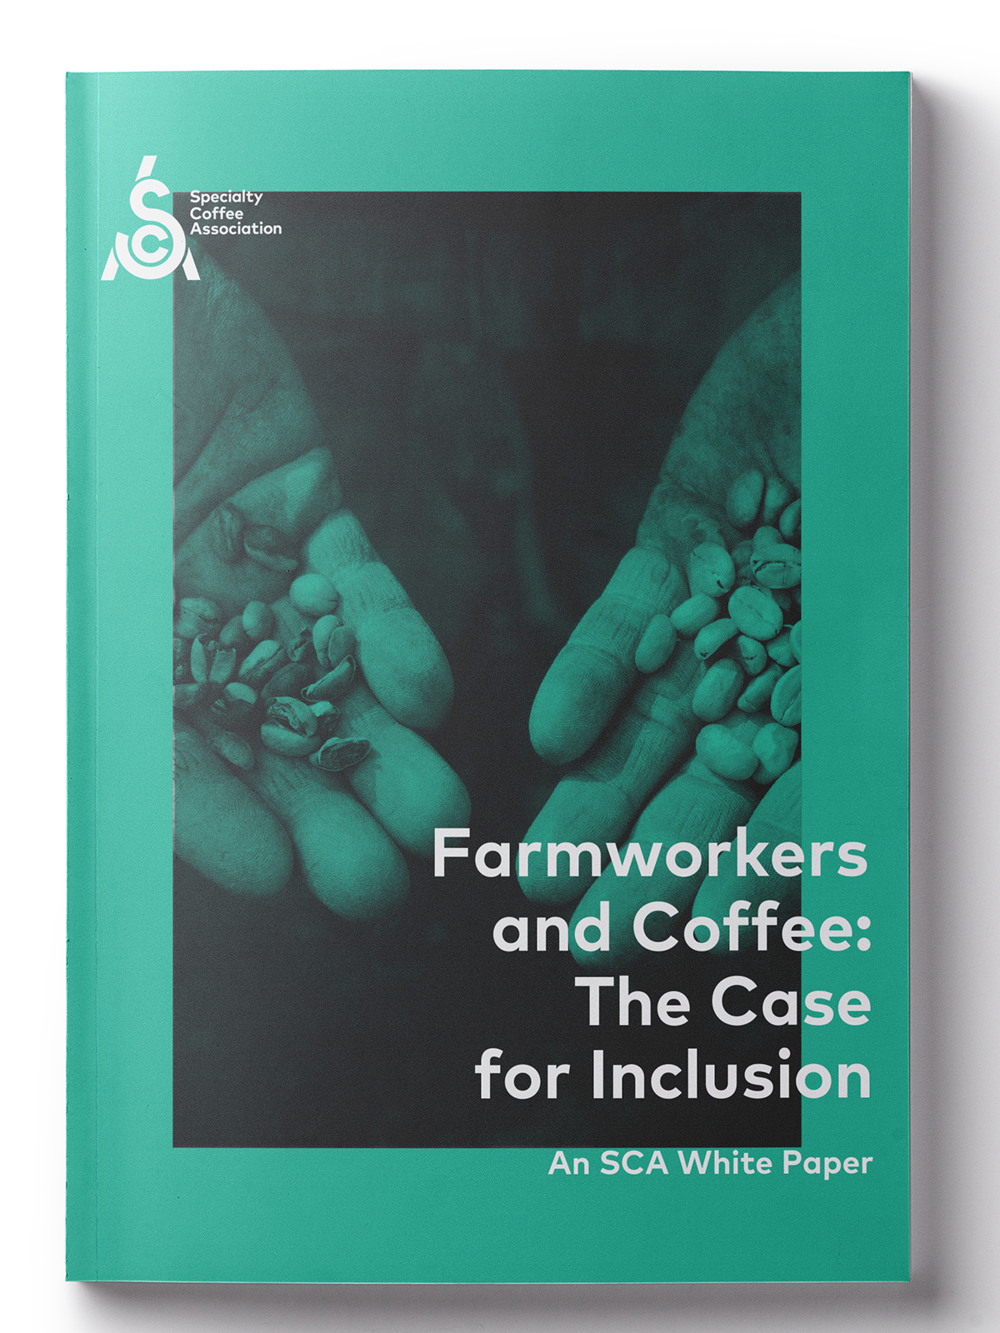 Farmworkers and Coffee: The Case for Inclusion   An SCA White Paper   Specialty coffee has invested and innovated continuously over more than two decades to make the coffee trade more inclusive and more equitable. However, the largest and most vulnerable group of participants in coffee supply chains—the tens of millions of wage-earning men, women, and children who work on coffee farms—have remained on the margins of those efforts.   Download